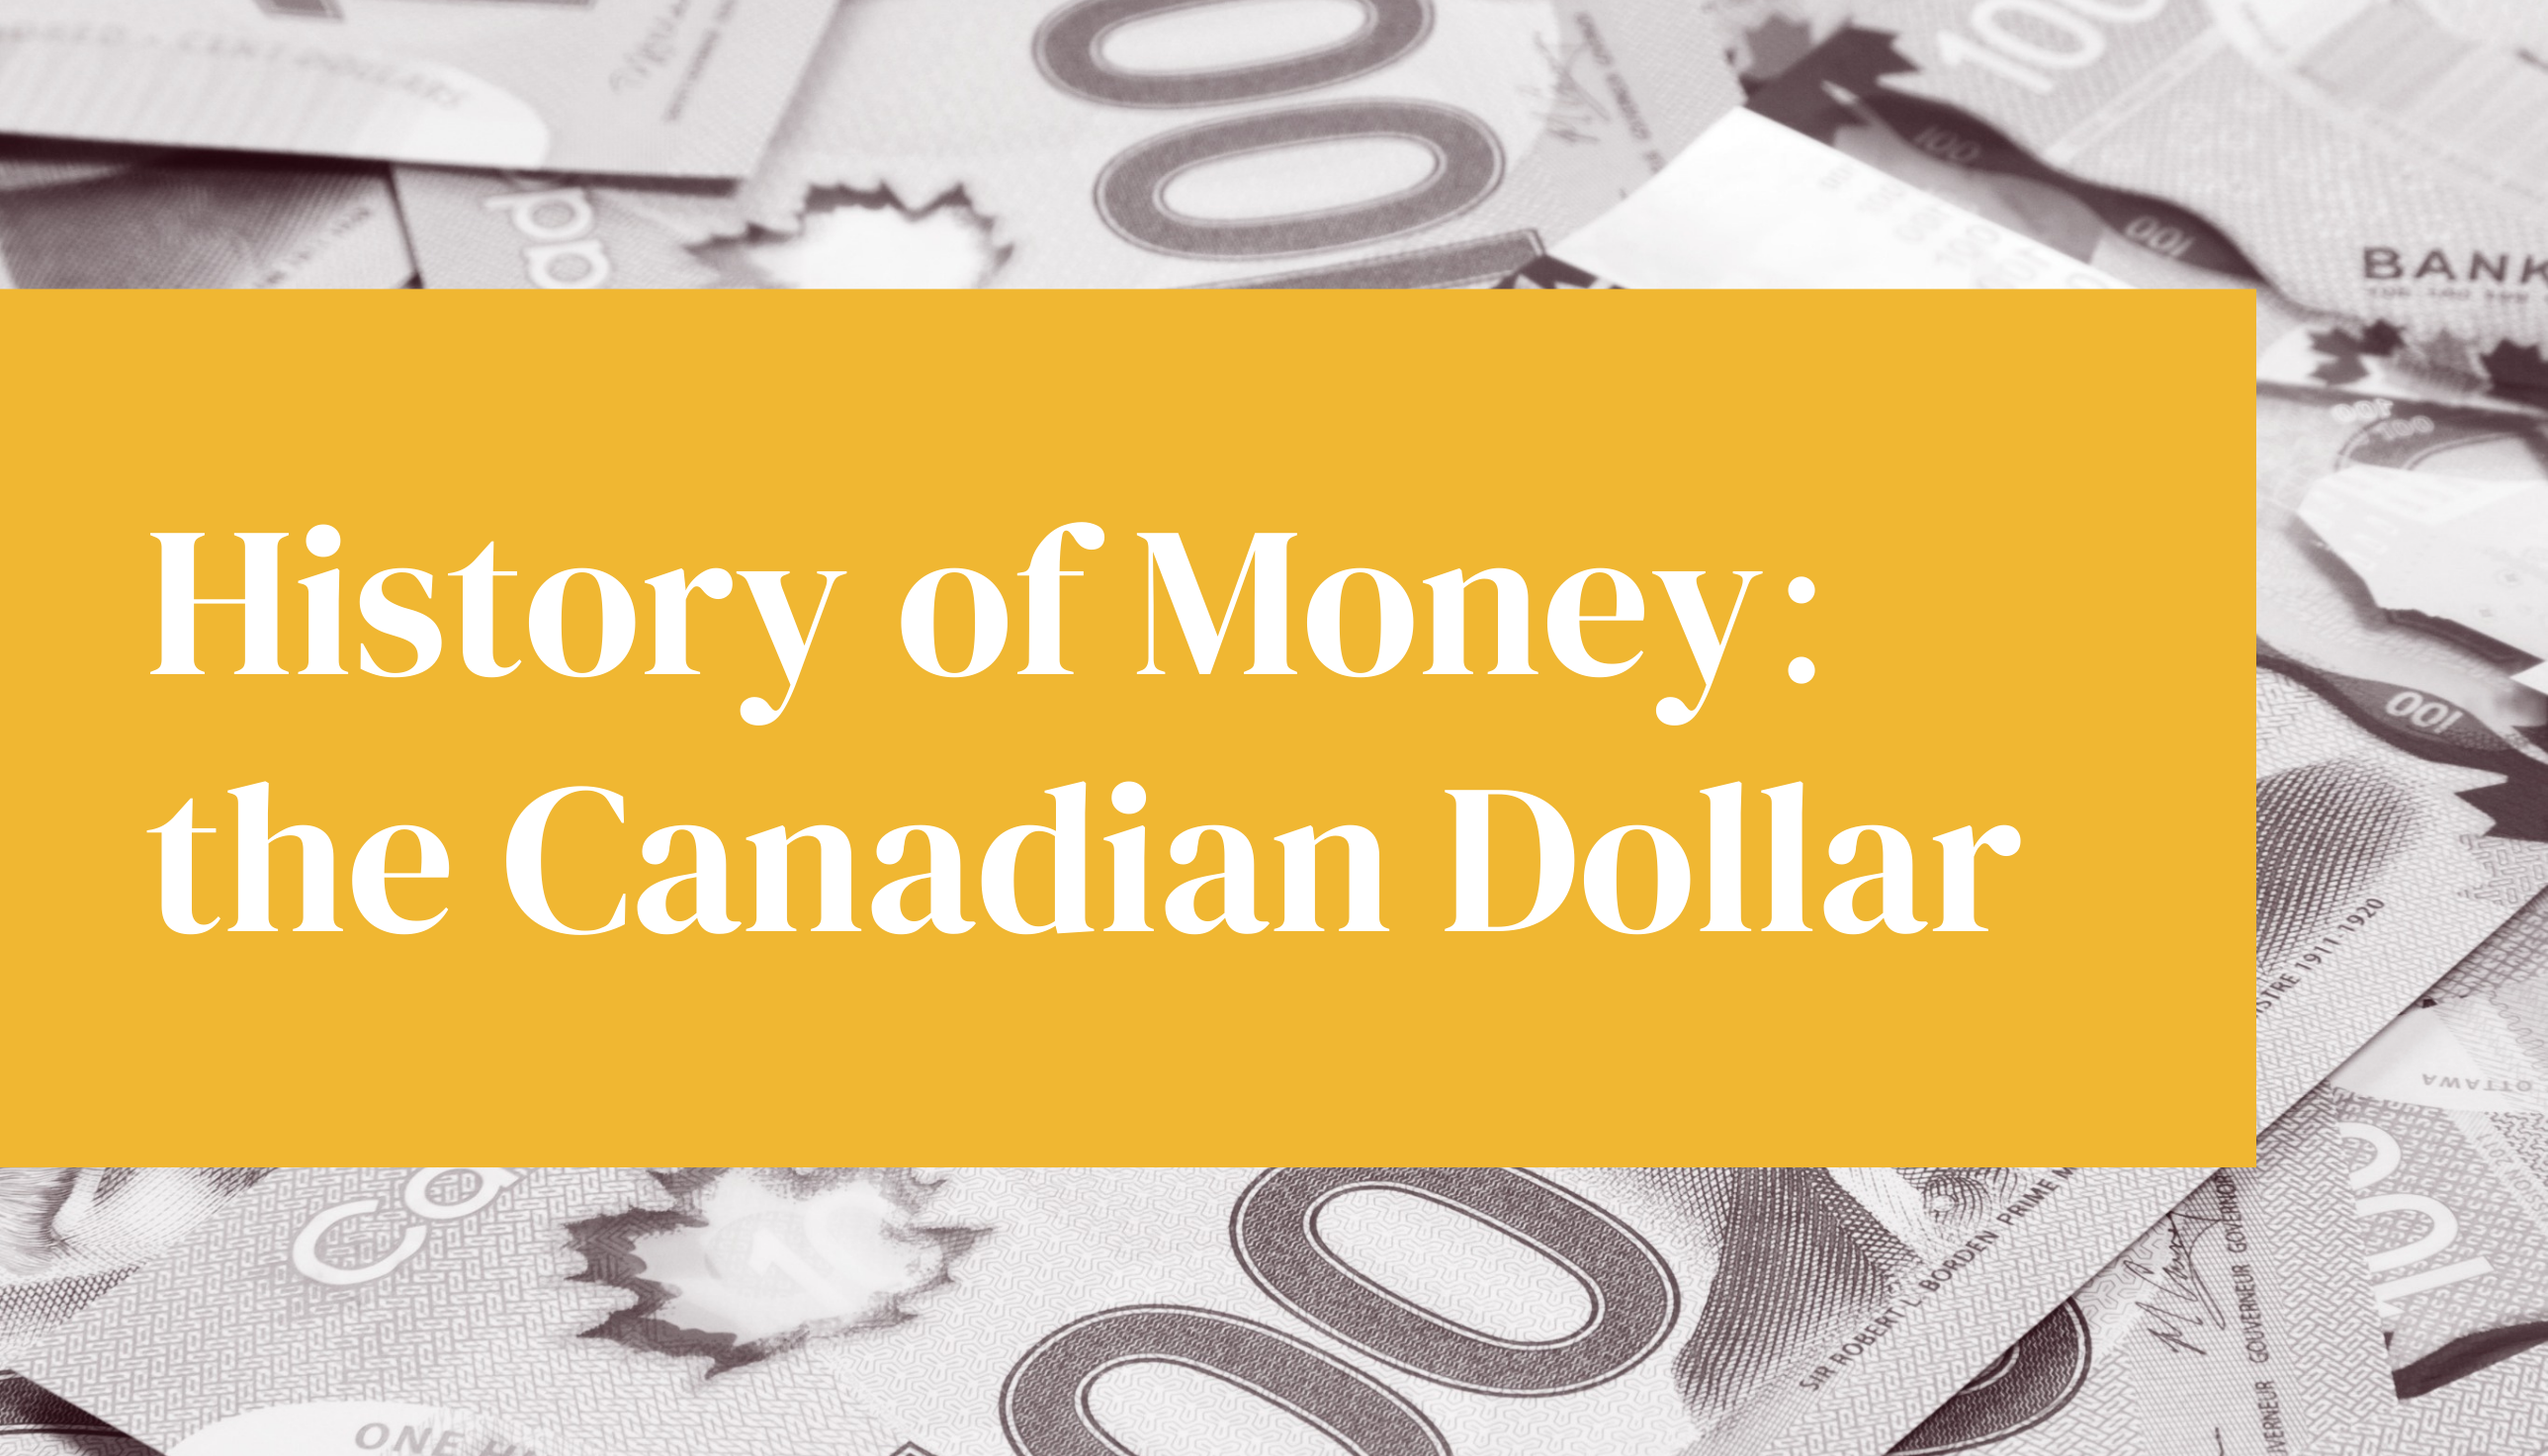 History of Money: The Canadian Dollar